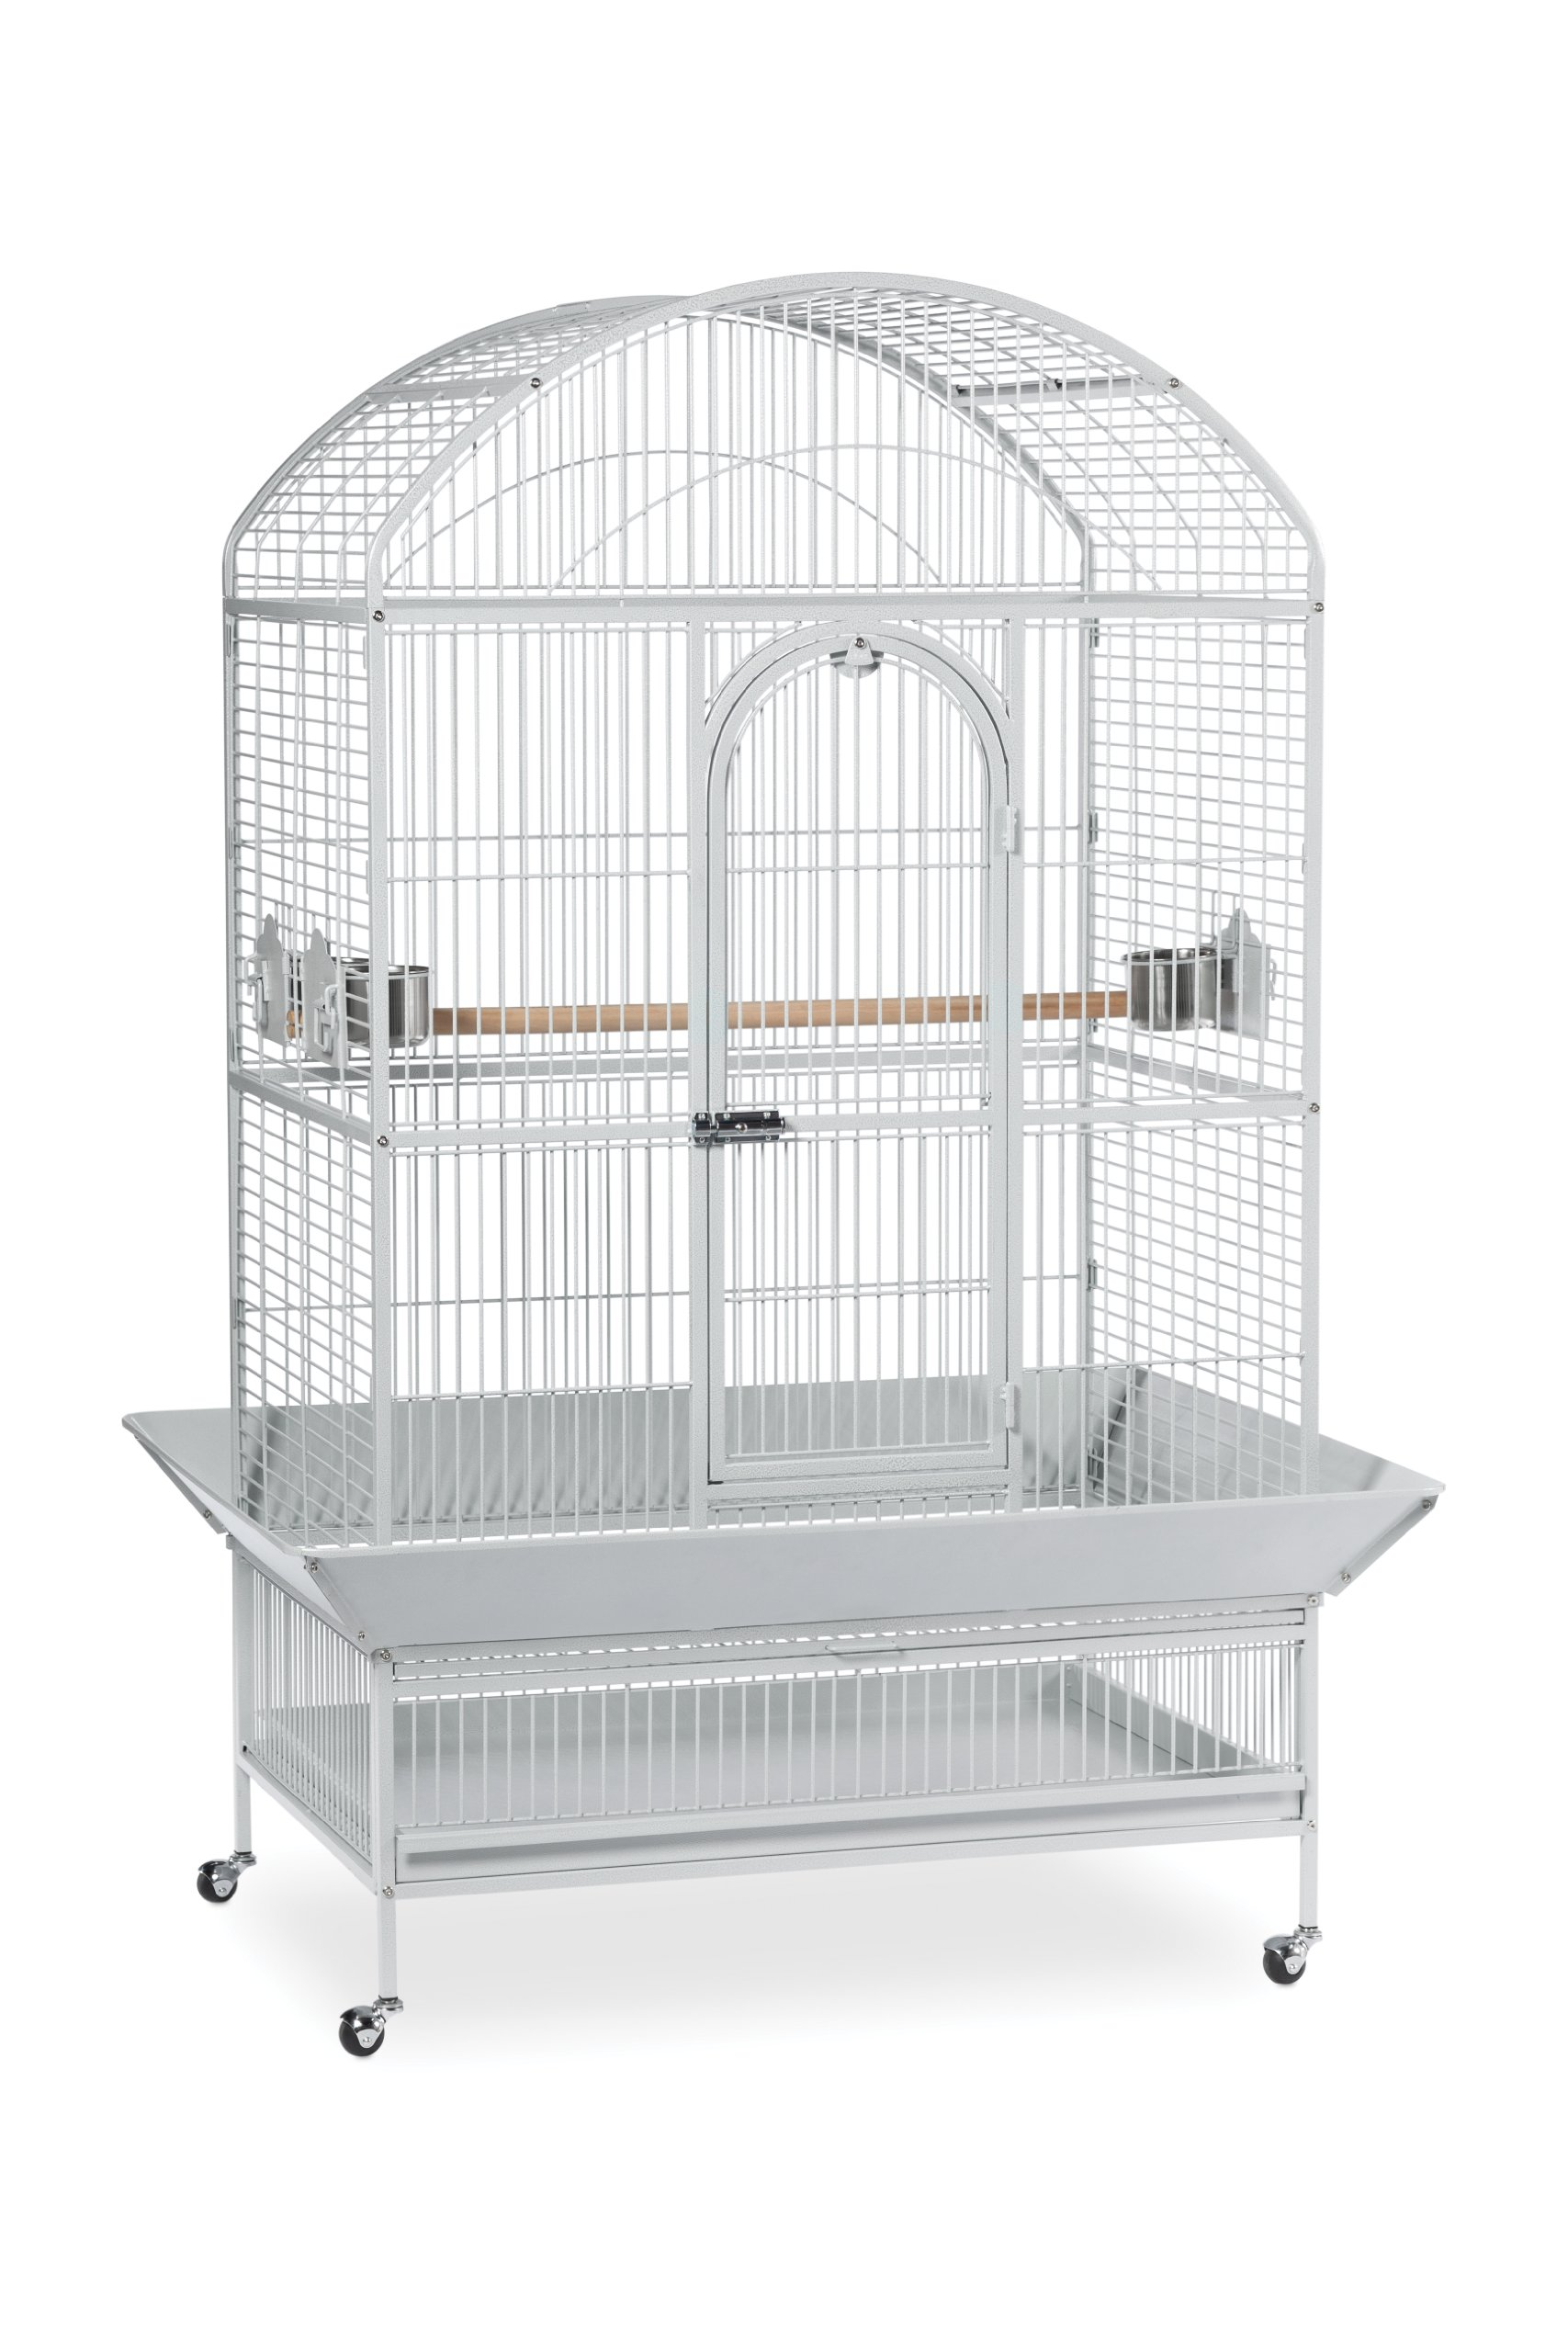 Prevue Pet Products Large Dometop Bird Cage 3163W, Pewter Hammertone